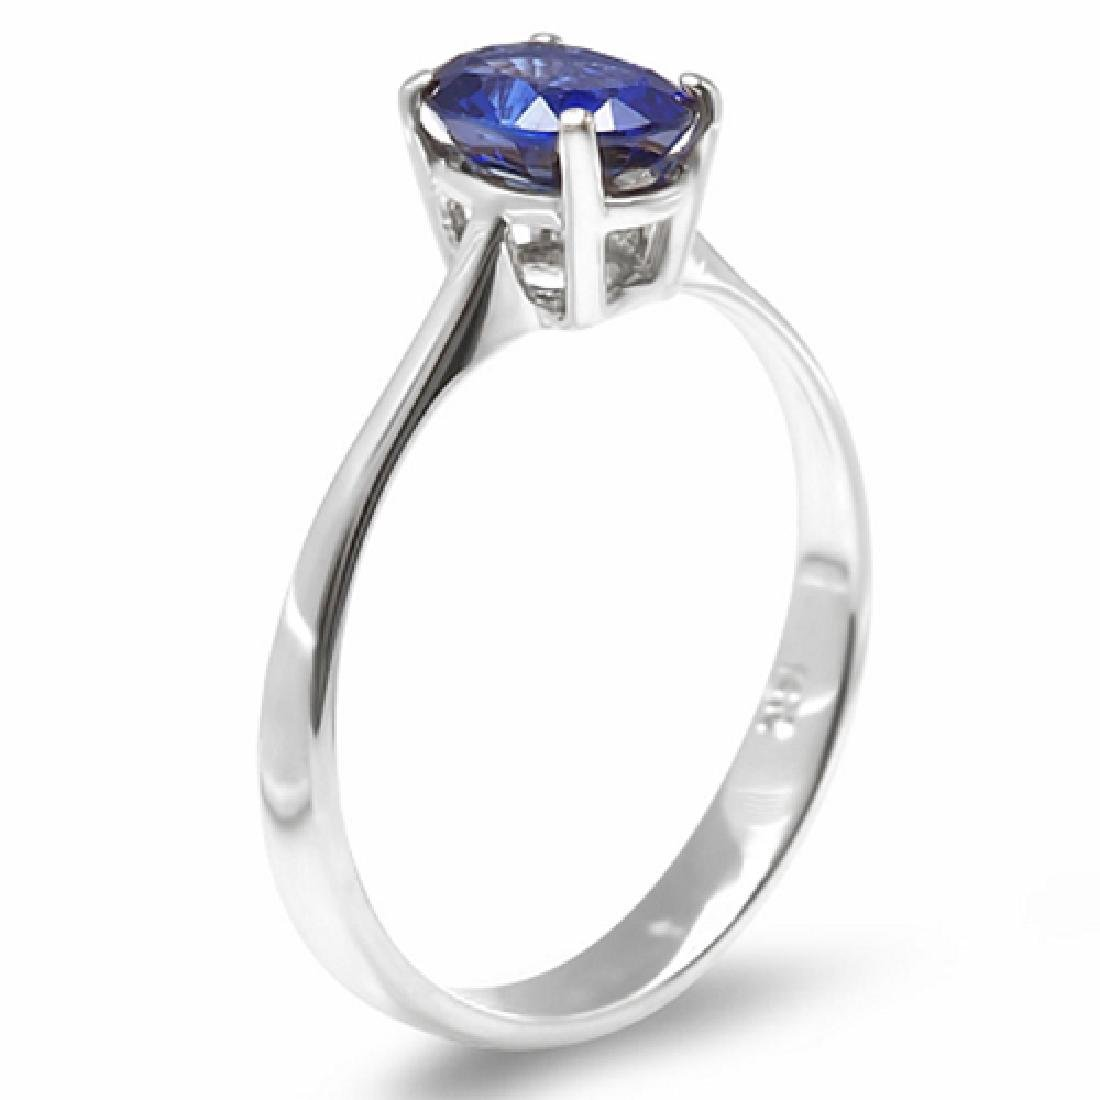 1.20 Carat Natural Sapphire 18K Solid White Gold Ring - 2